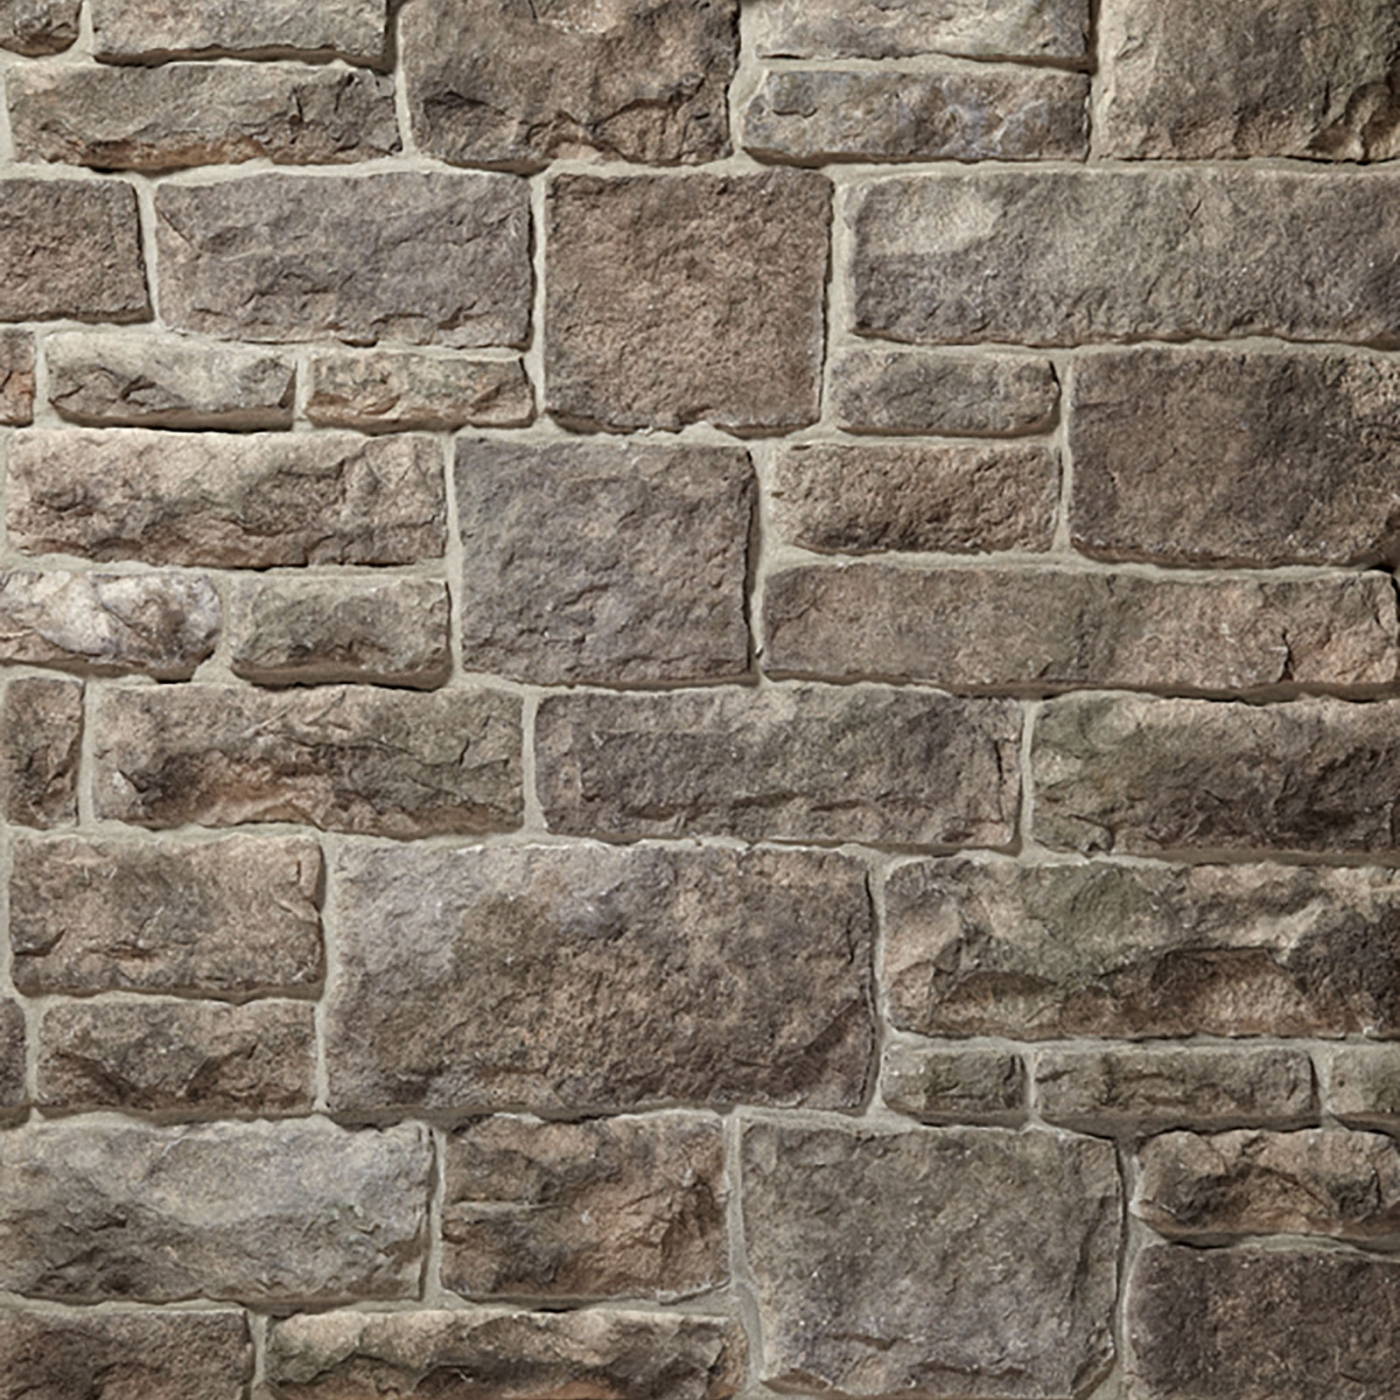 Appalachian Cut Stone Stone Veneer from Environmental StoneWorks